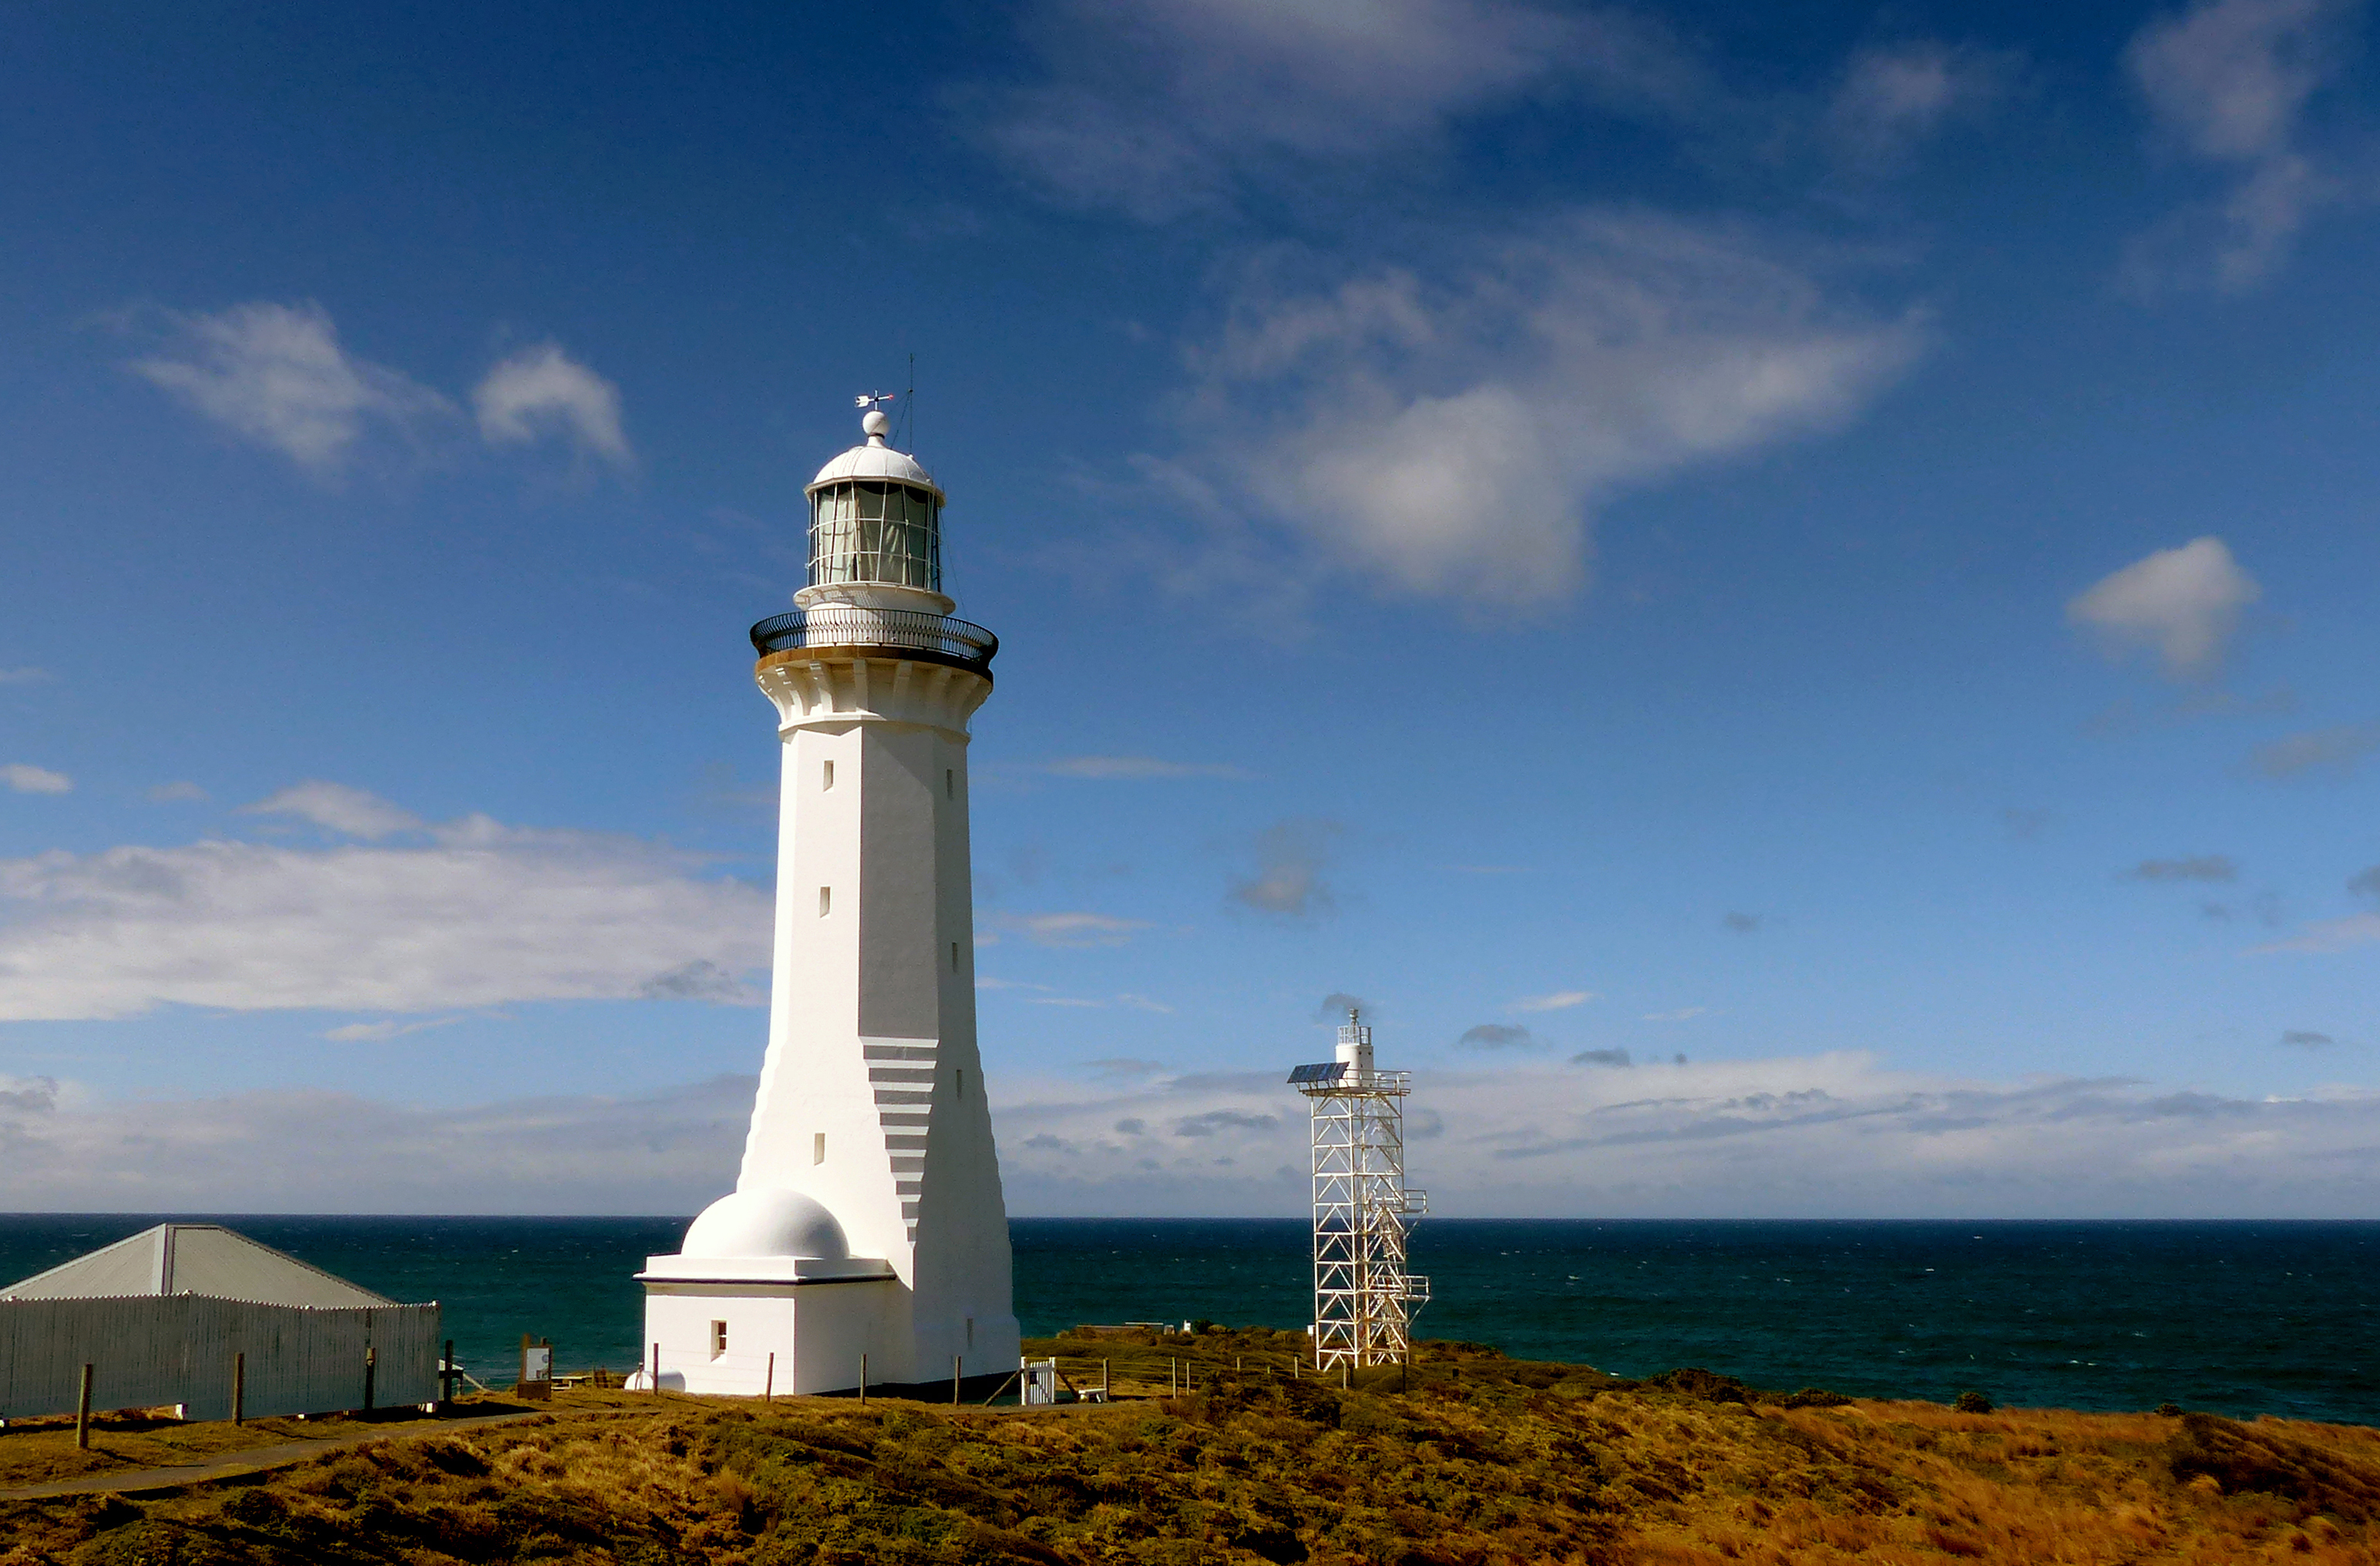 Green cape lighthouse. photo